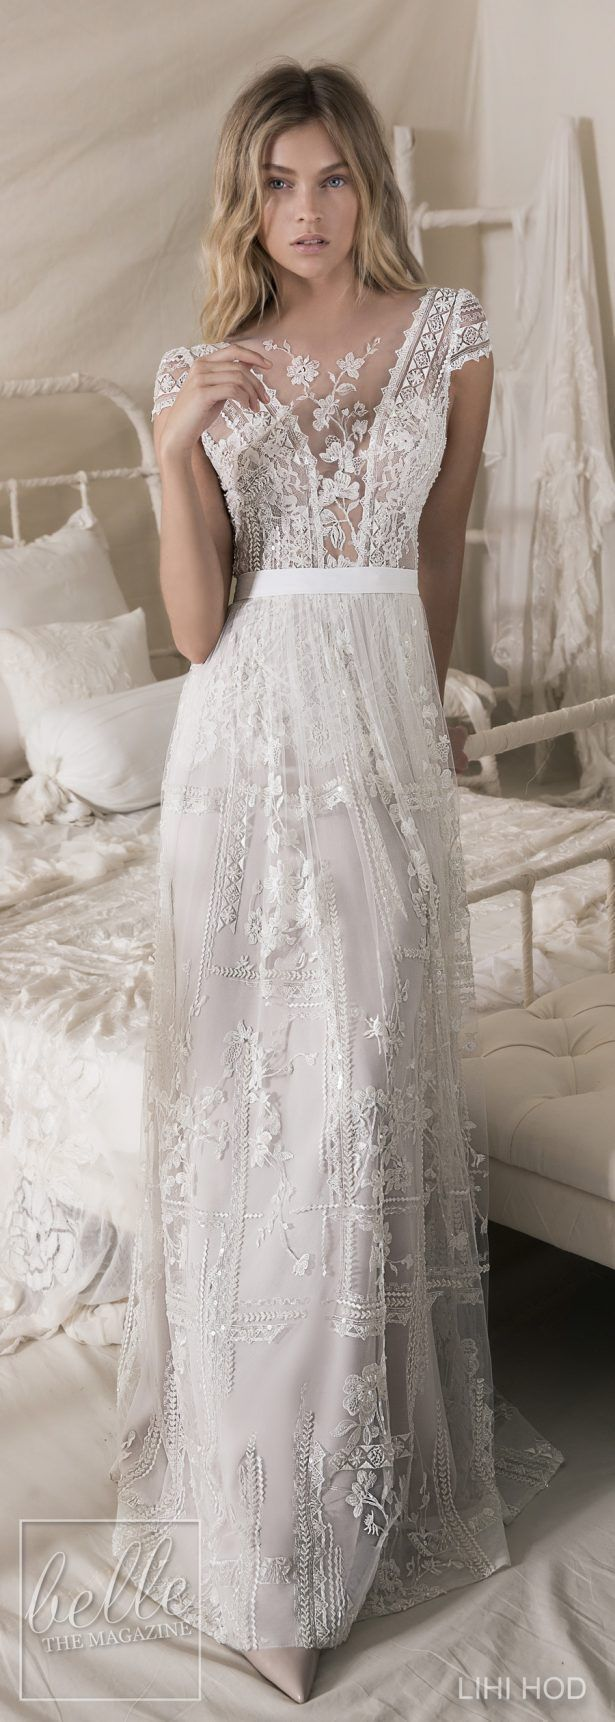 Cheap rustic wedding dresses   Rustic Wedding Dresses for the Sophisticated Bride  Complete